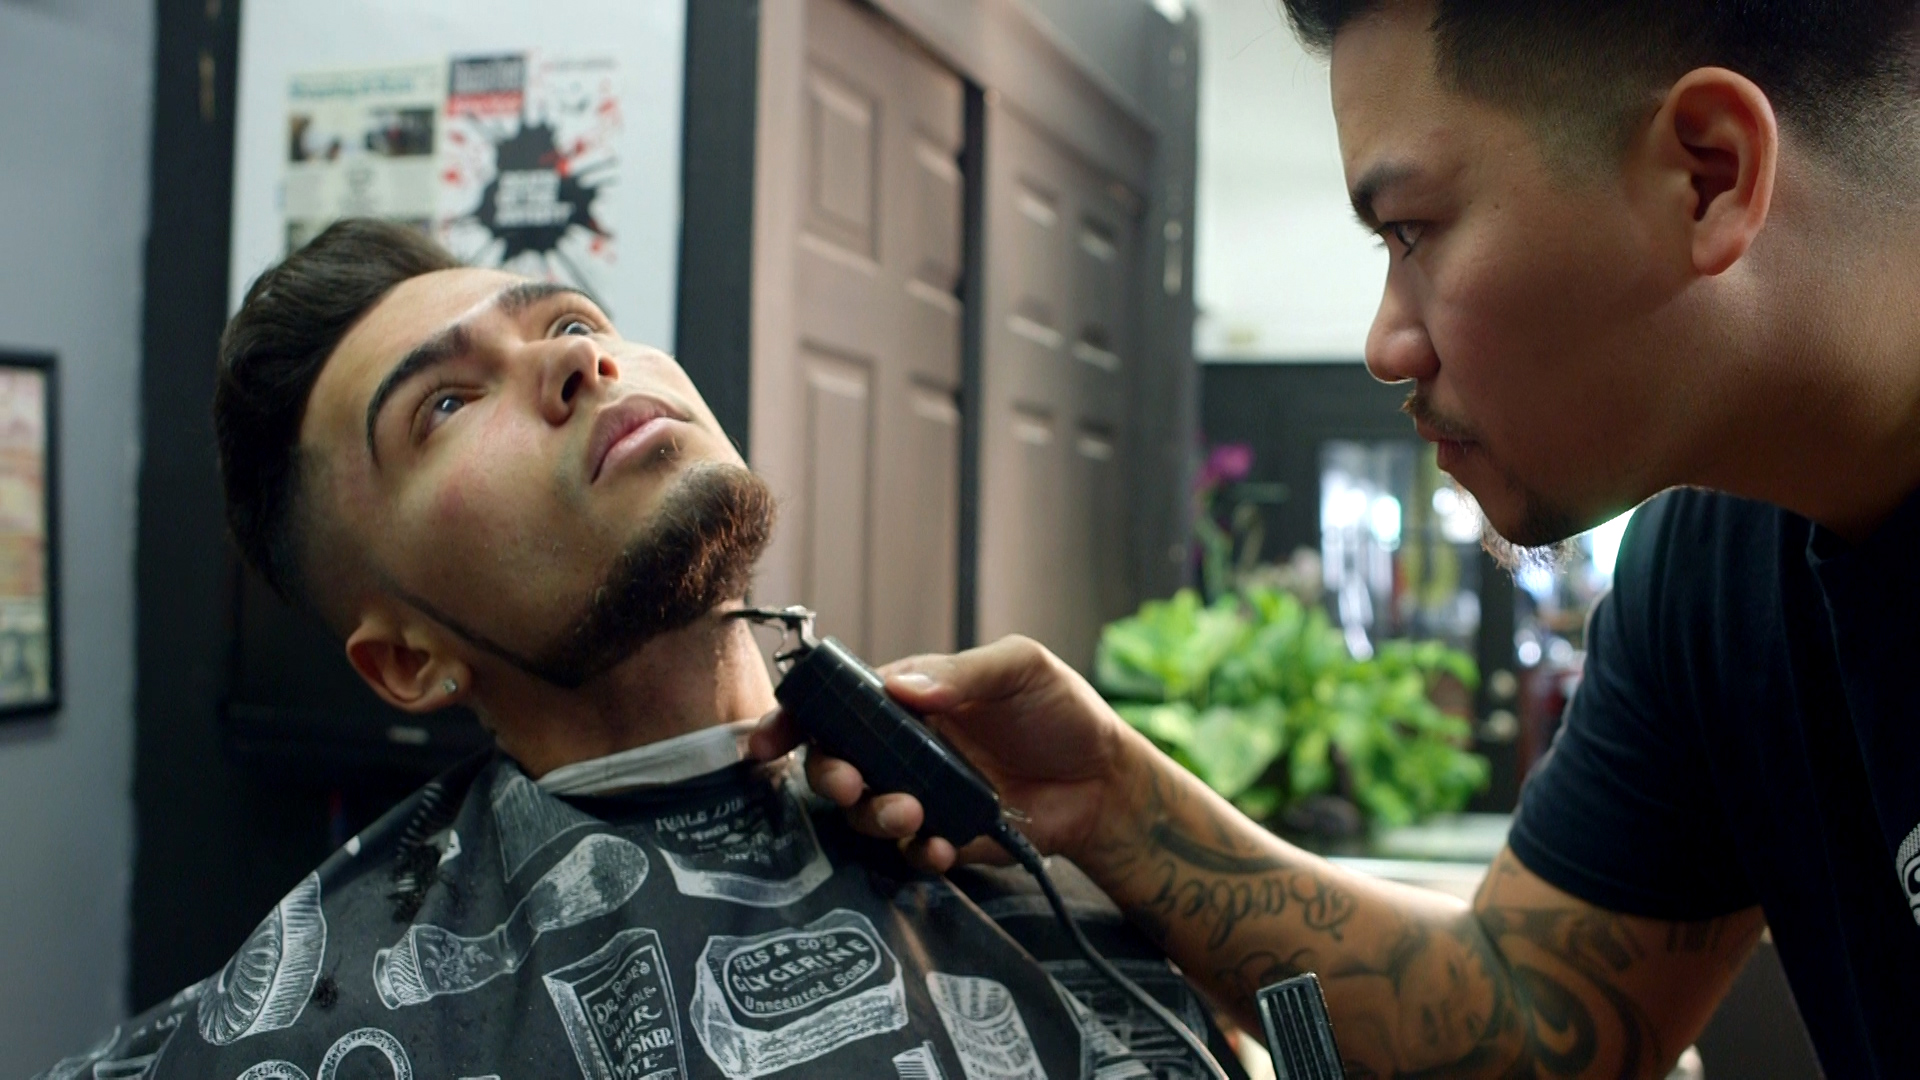 Queen S Barber Filthy Rich On His Rise To Barbering Fame